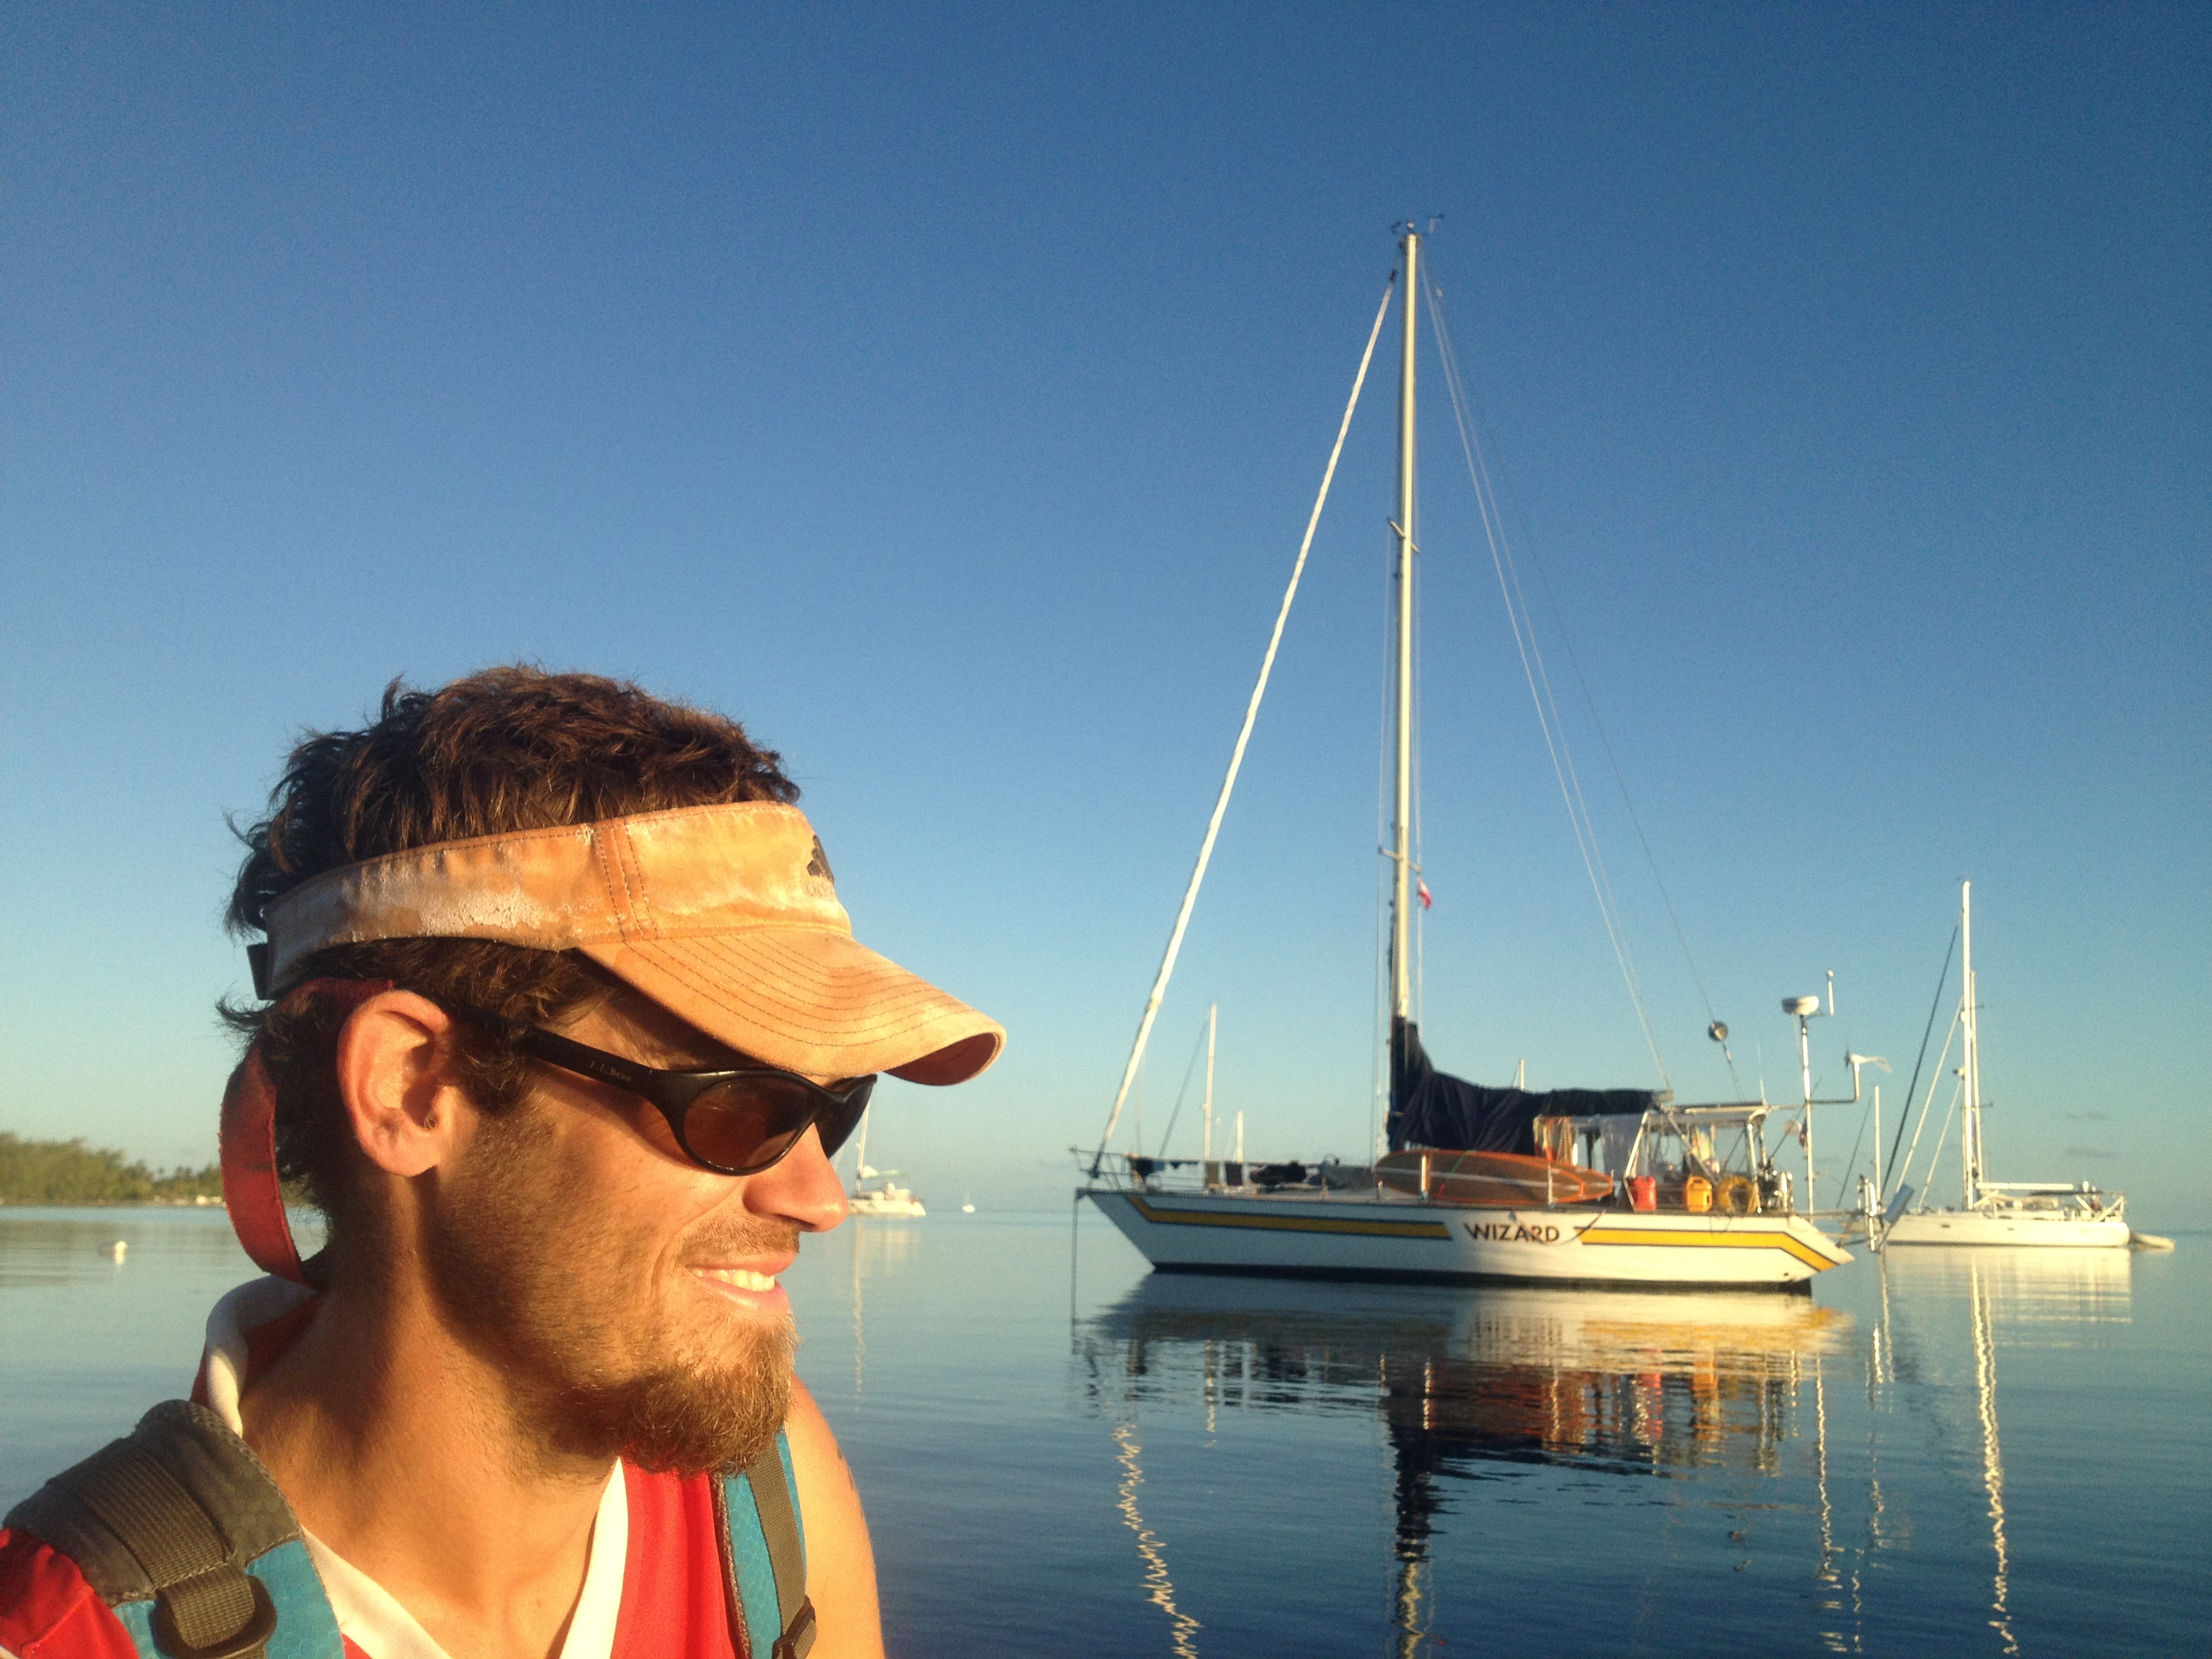 Rob takes in the sunset on a dinghy ride back to the 40 foot sloop, Wizard, owned by John and Sue out of California.